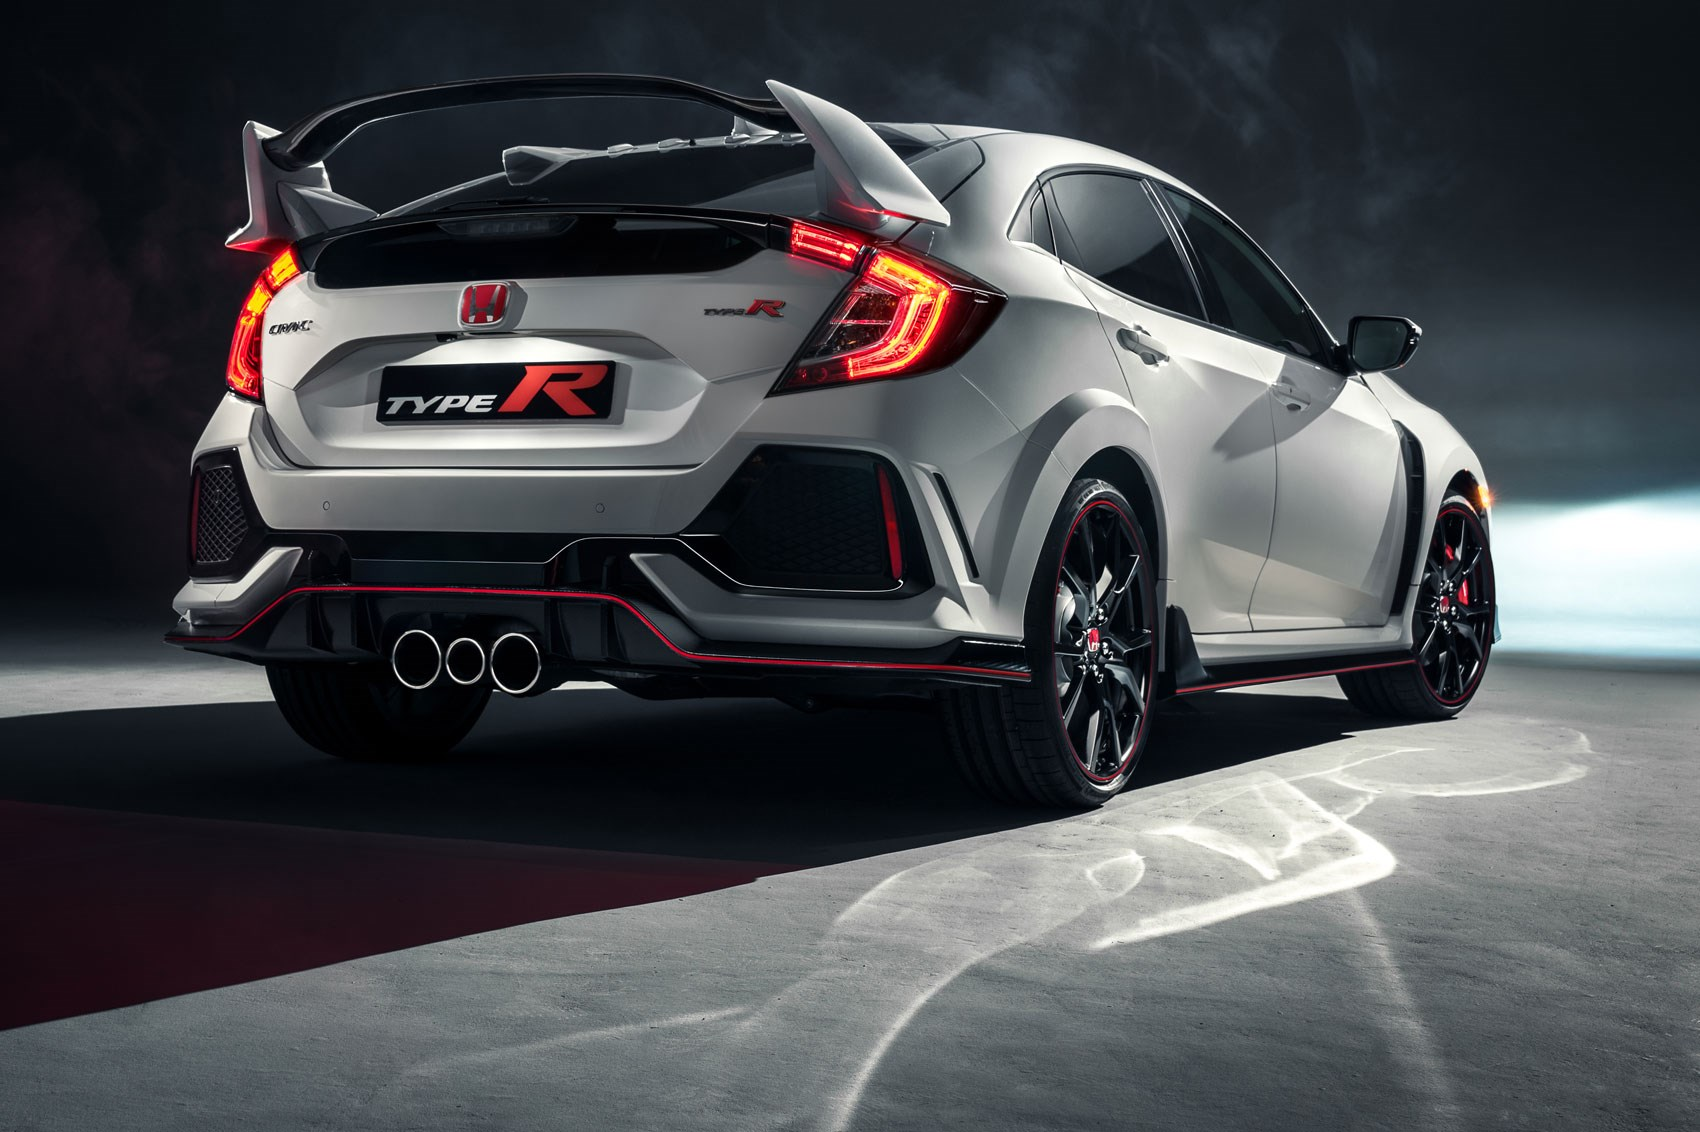 new honda civic type r revealed in pictures by car magazine. Black Bedroom Furniture Sets. Home Design Ideas